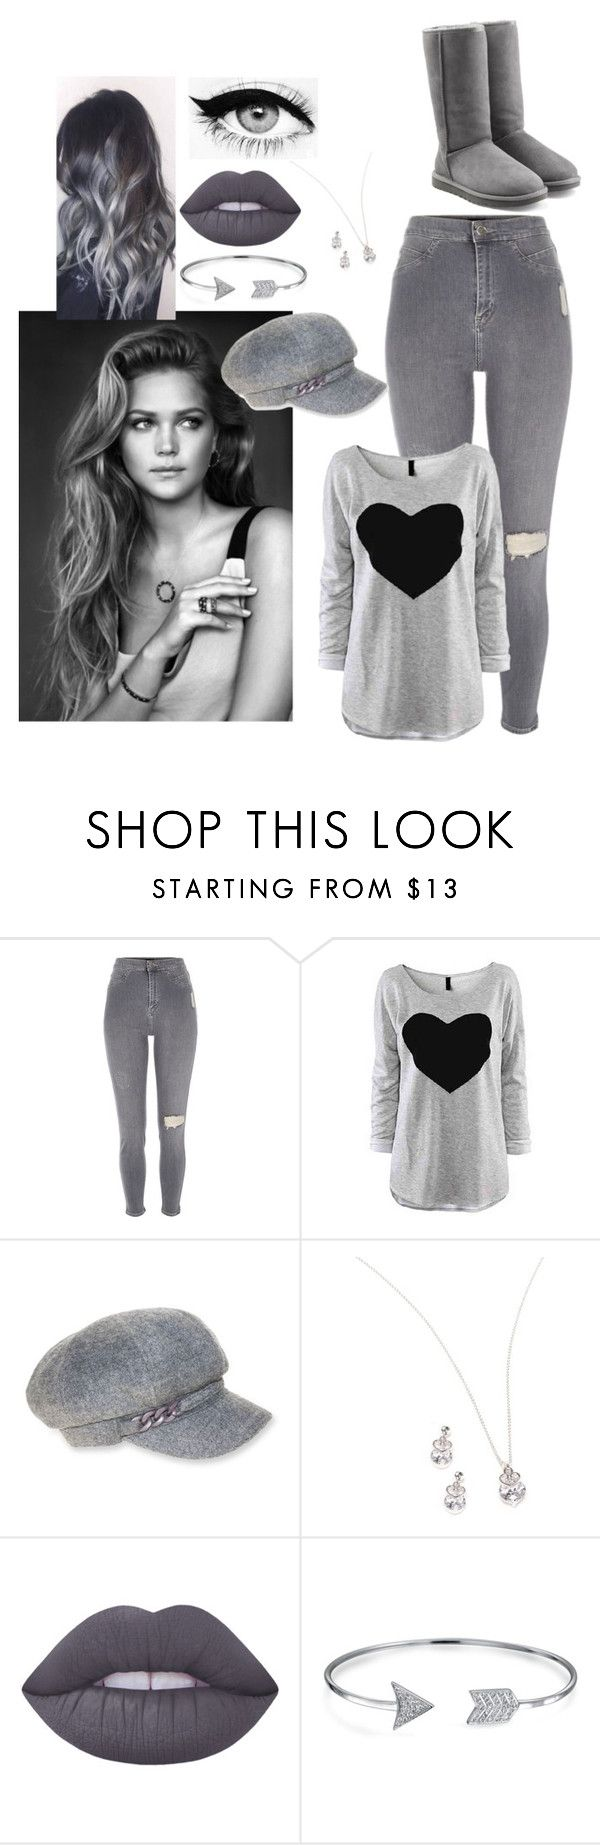 """""""#Grey"""" by chrissy102 ❤ liked on Polyvore featuring River Island, Eyeko, Nine West, Kim Rogers, Lime Crime, Bling Jewelry and UGG Australia"""